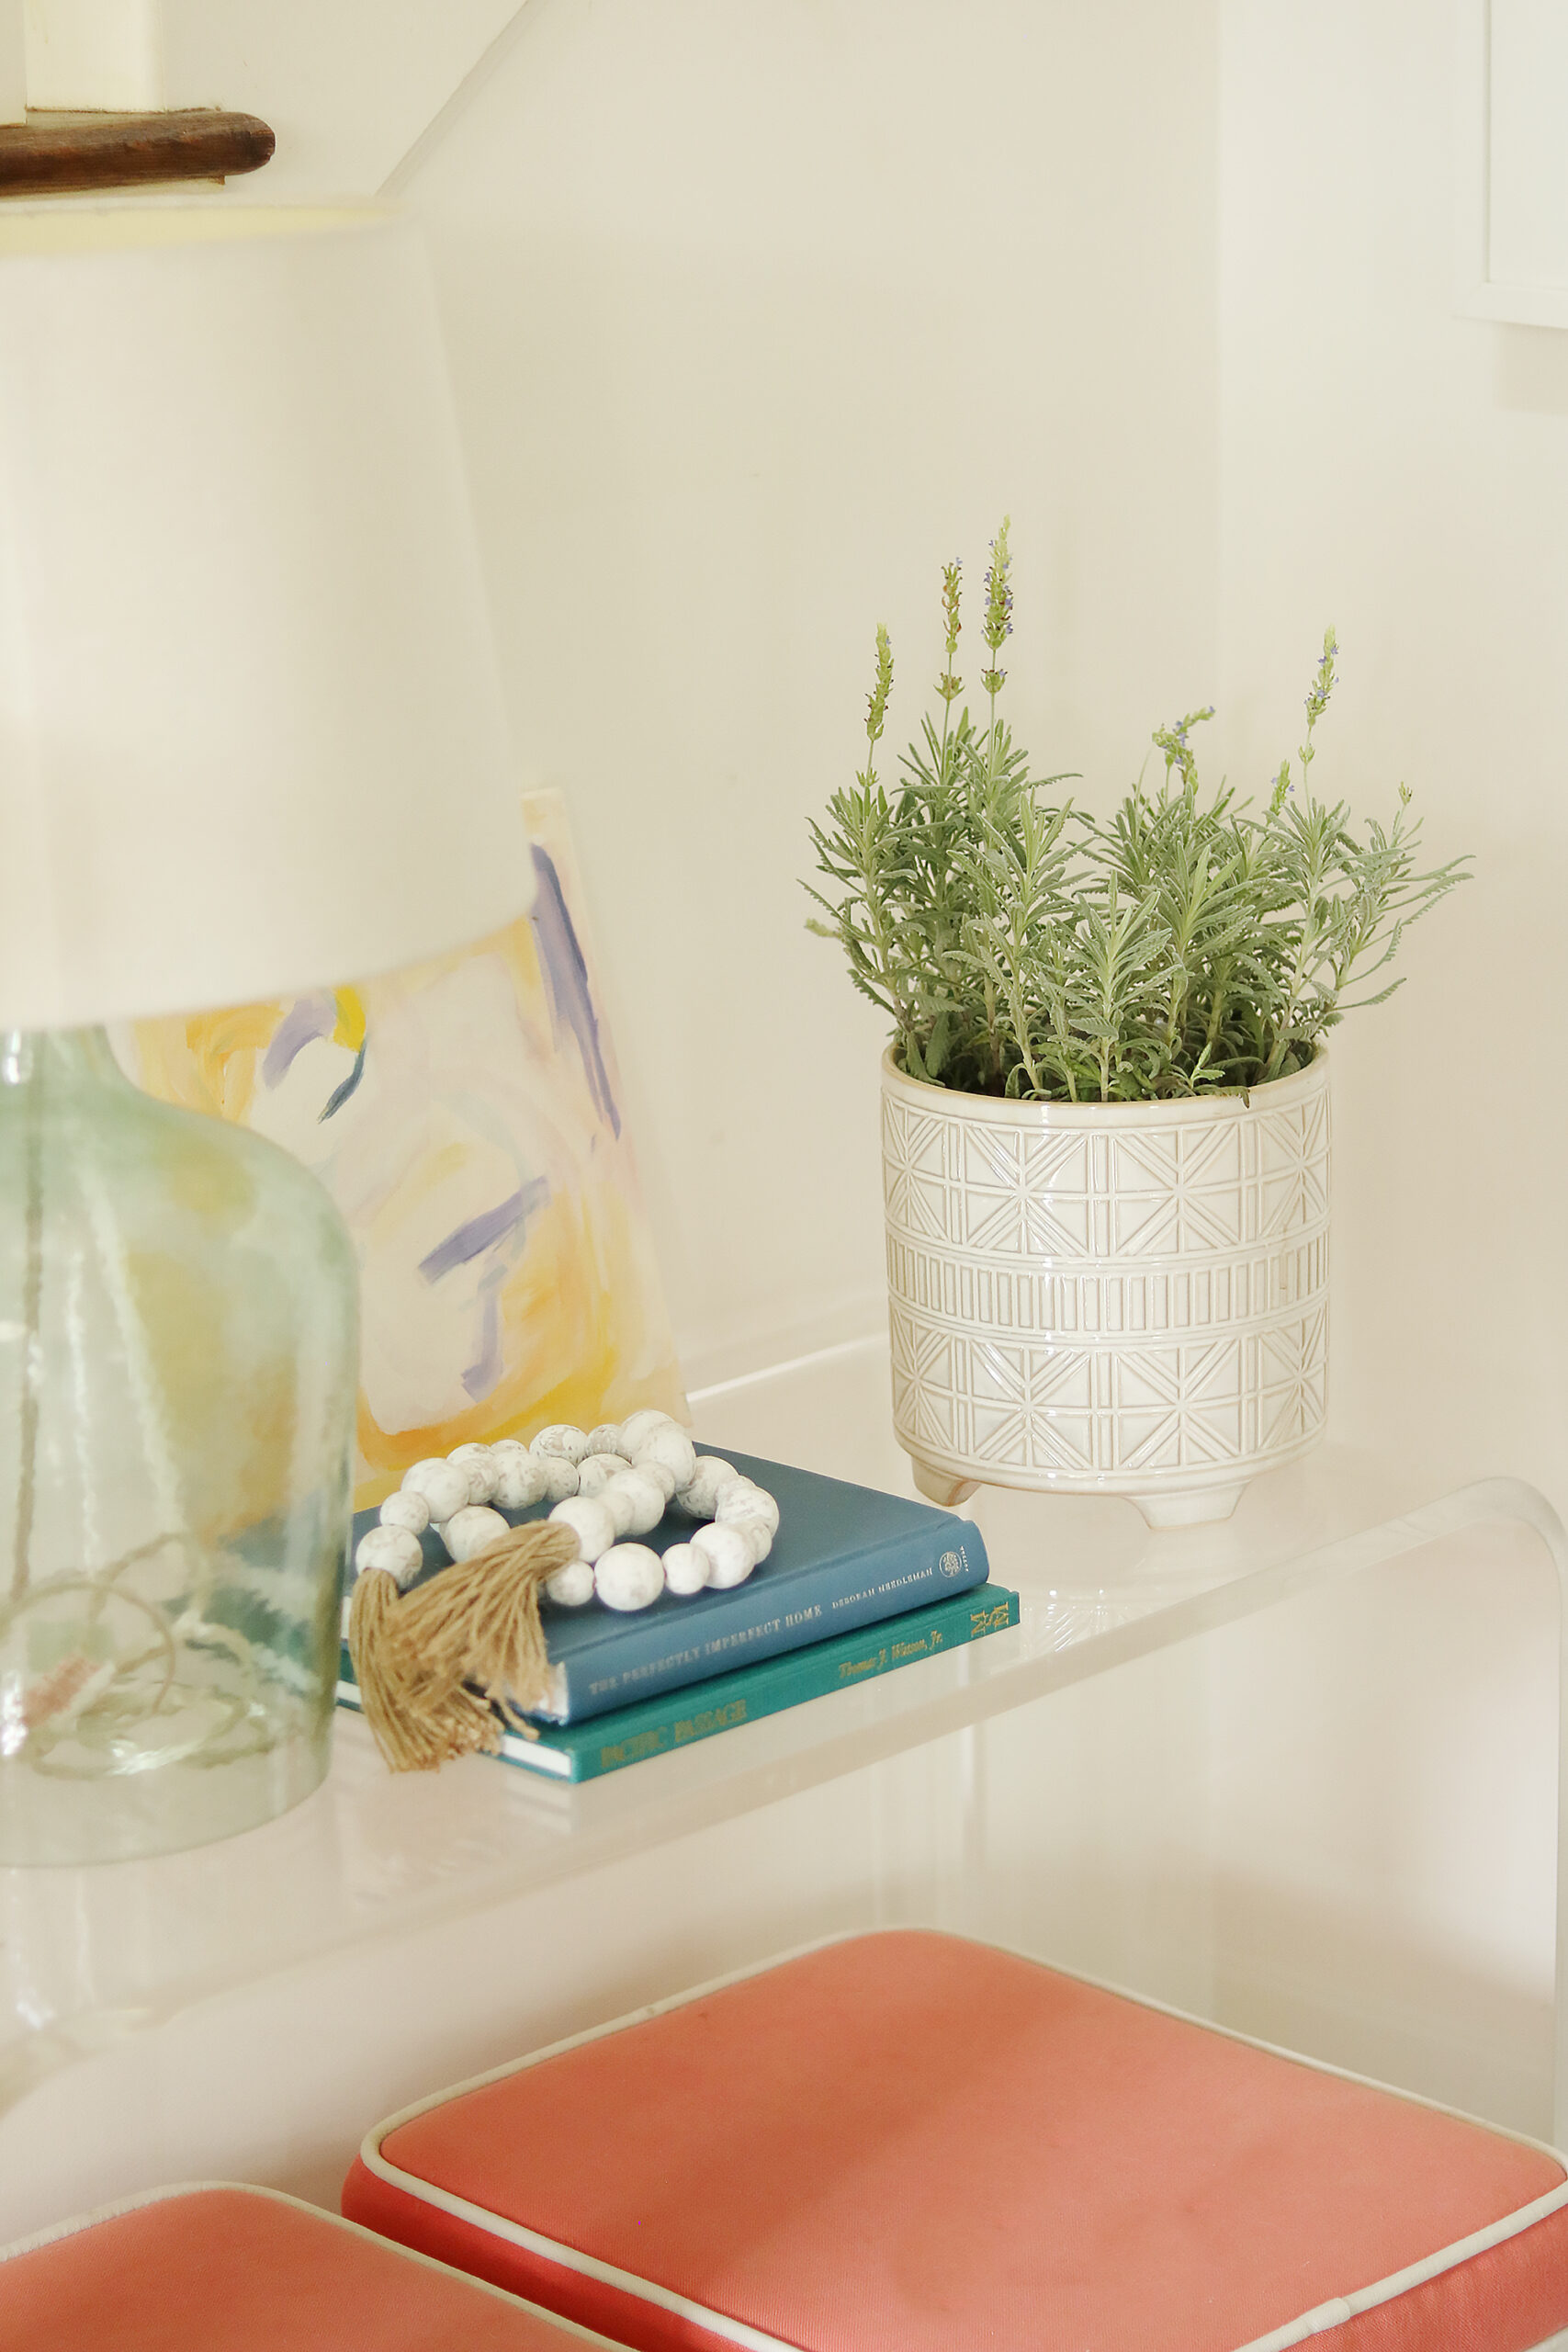 Lavender pot in entry way for spring styling, spring flower || Darling Darleen Top Lifestyle Blogger #lavenderplant #springflower